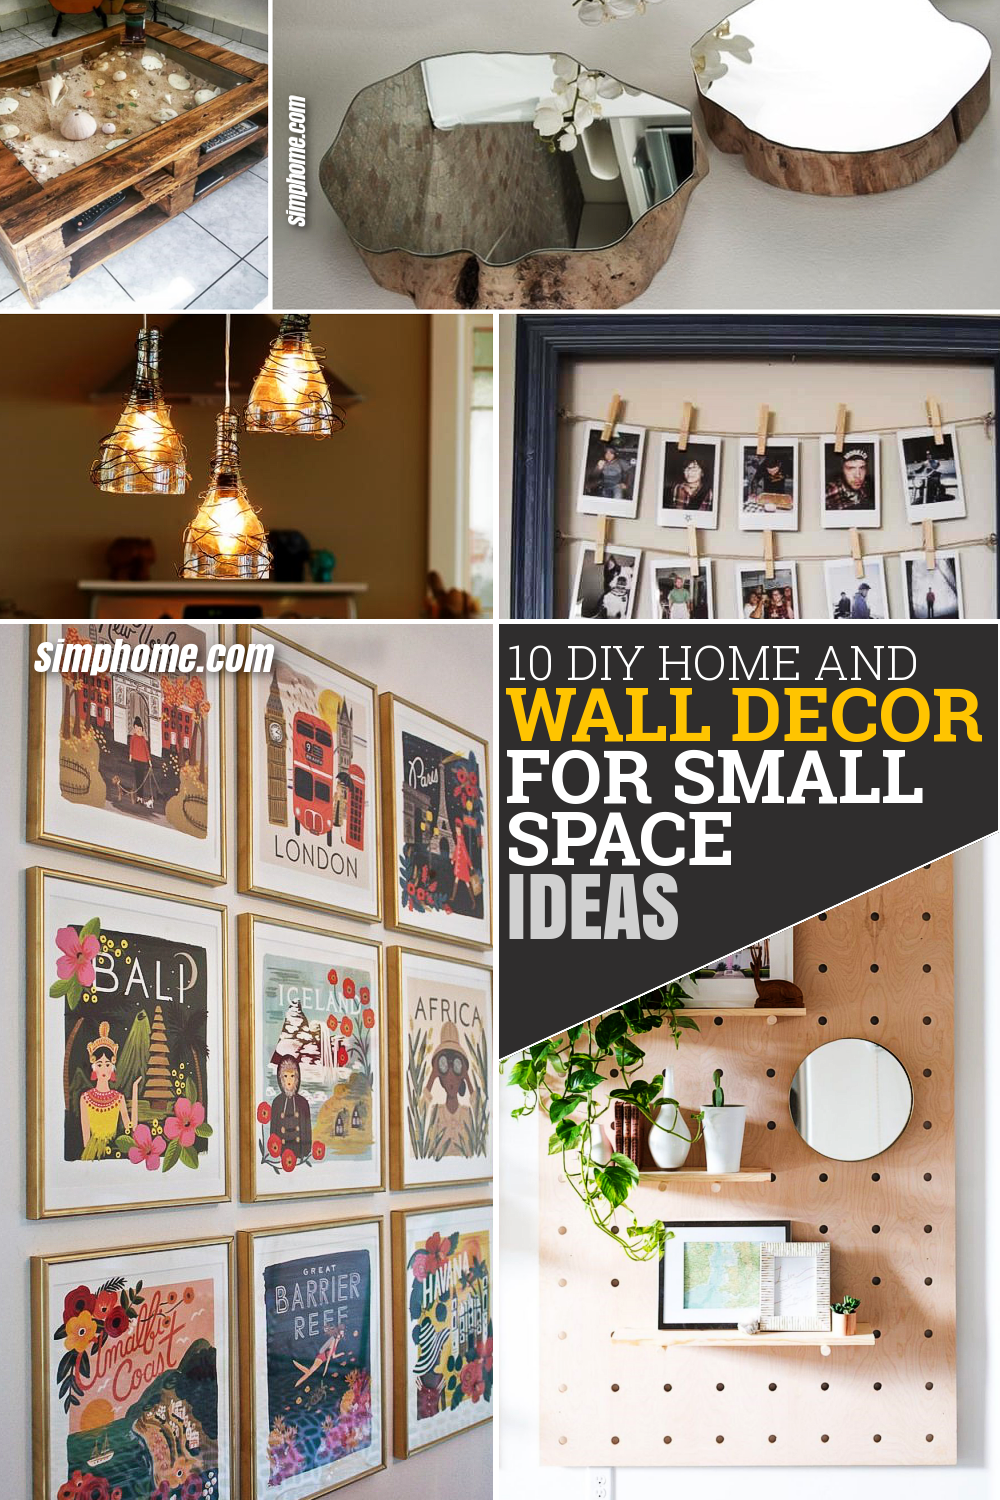 10 DIY Home and Wall Decor Small Space Ideas via Simpome.com Featured Pinterest